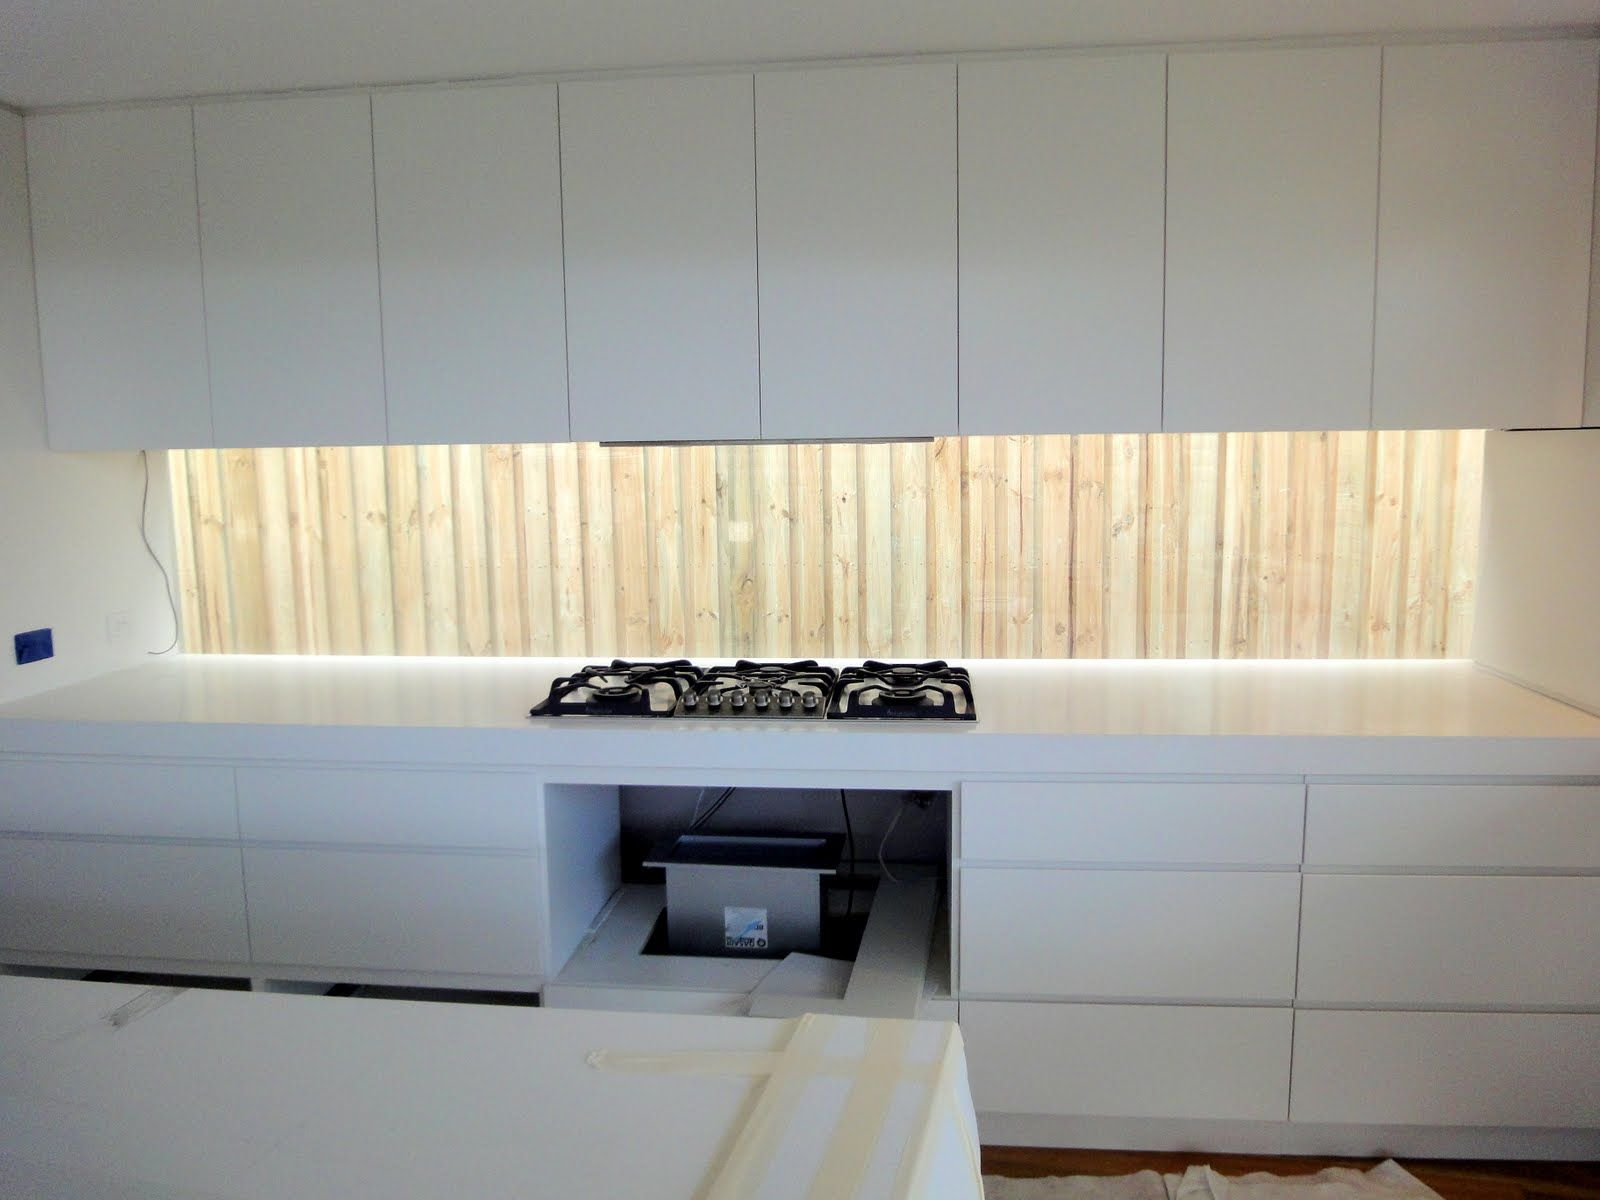 like the lots of drawers like the no handle look on the top cupboards same window splash back